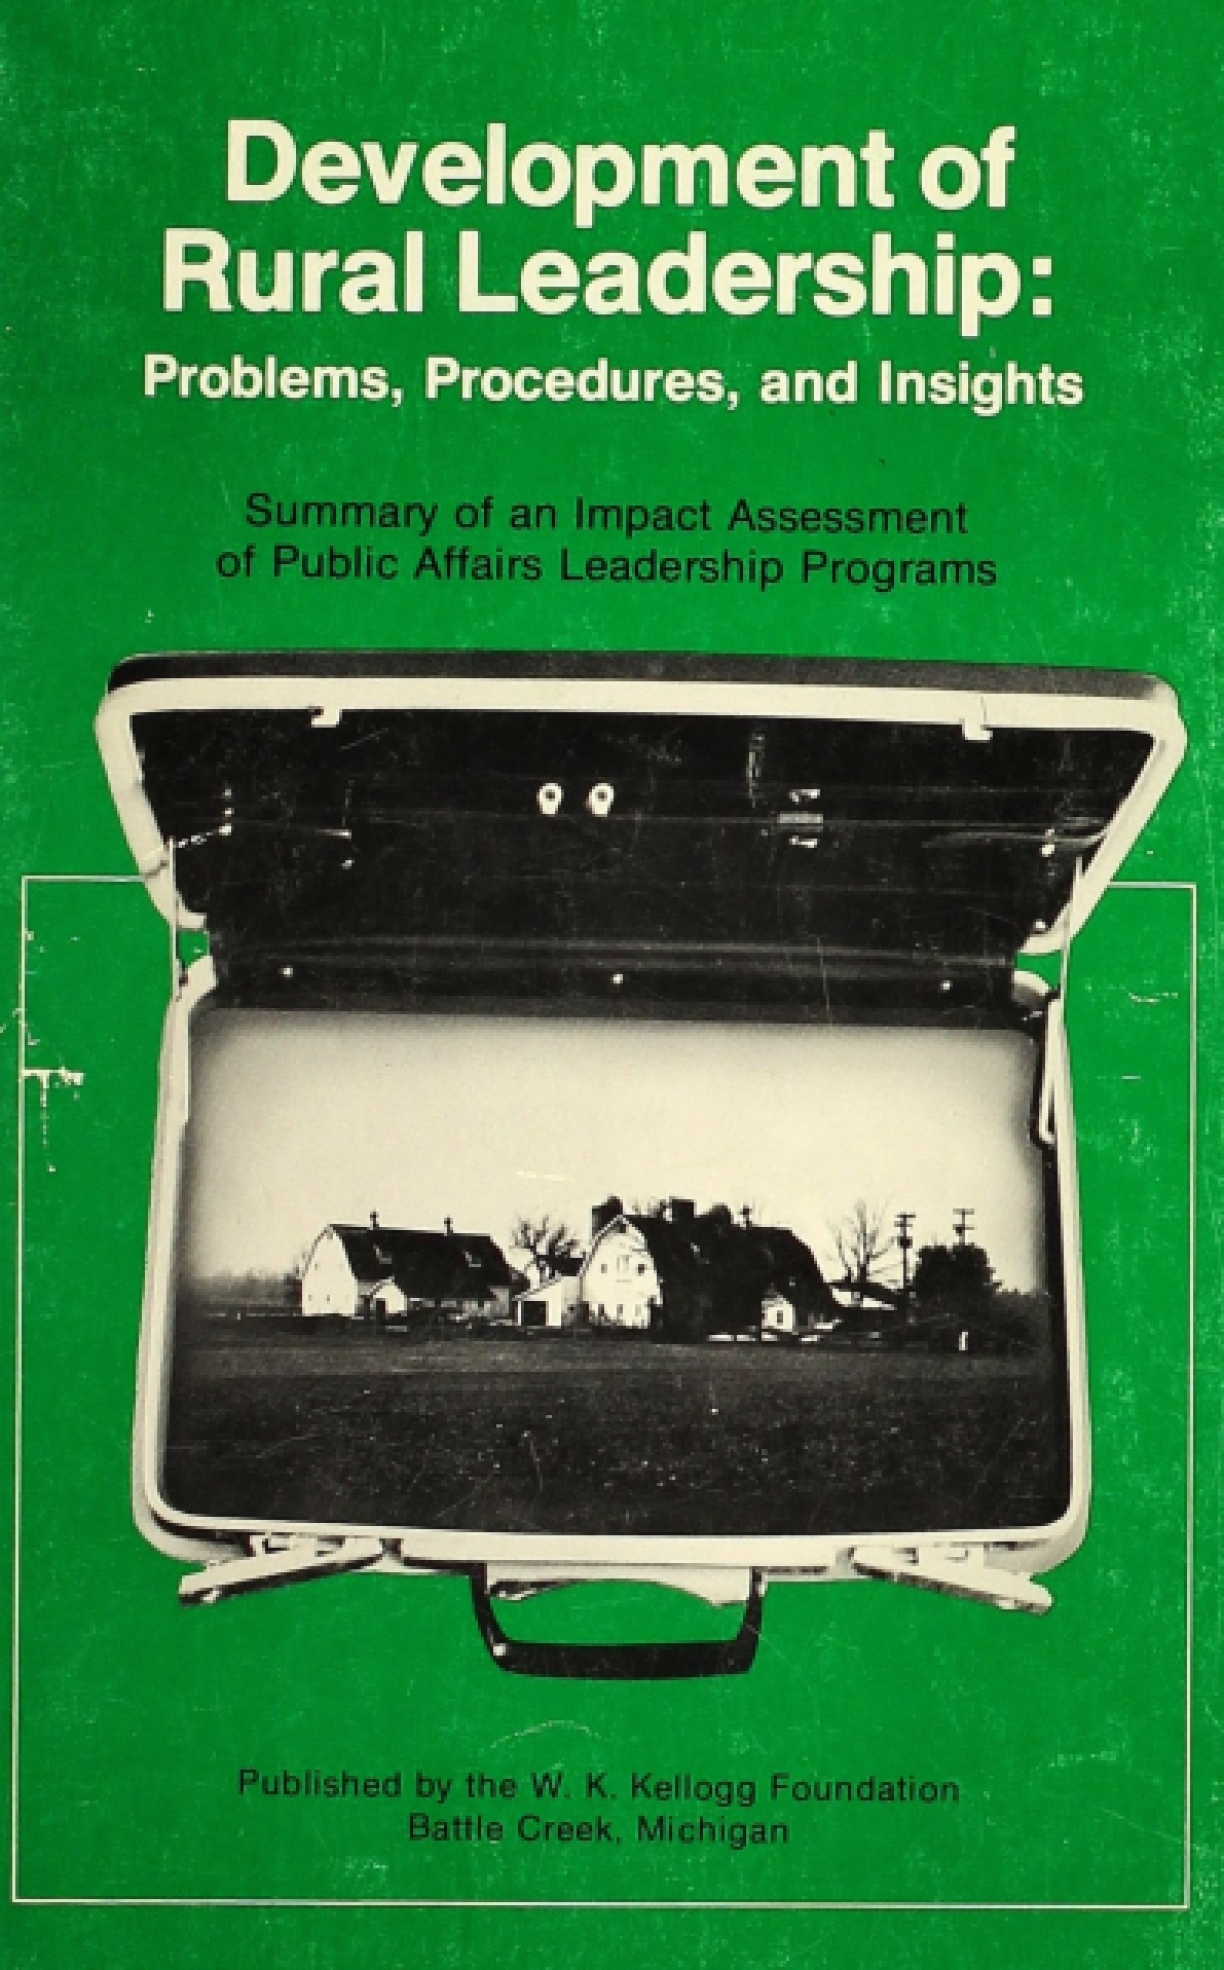 Development of Rural Leadership: Problems, Procedures, and Insights